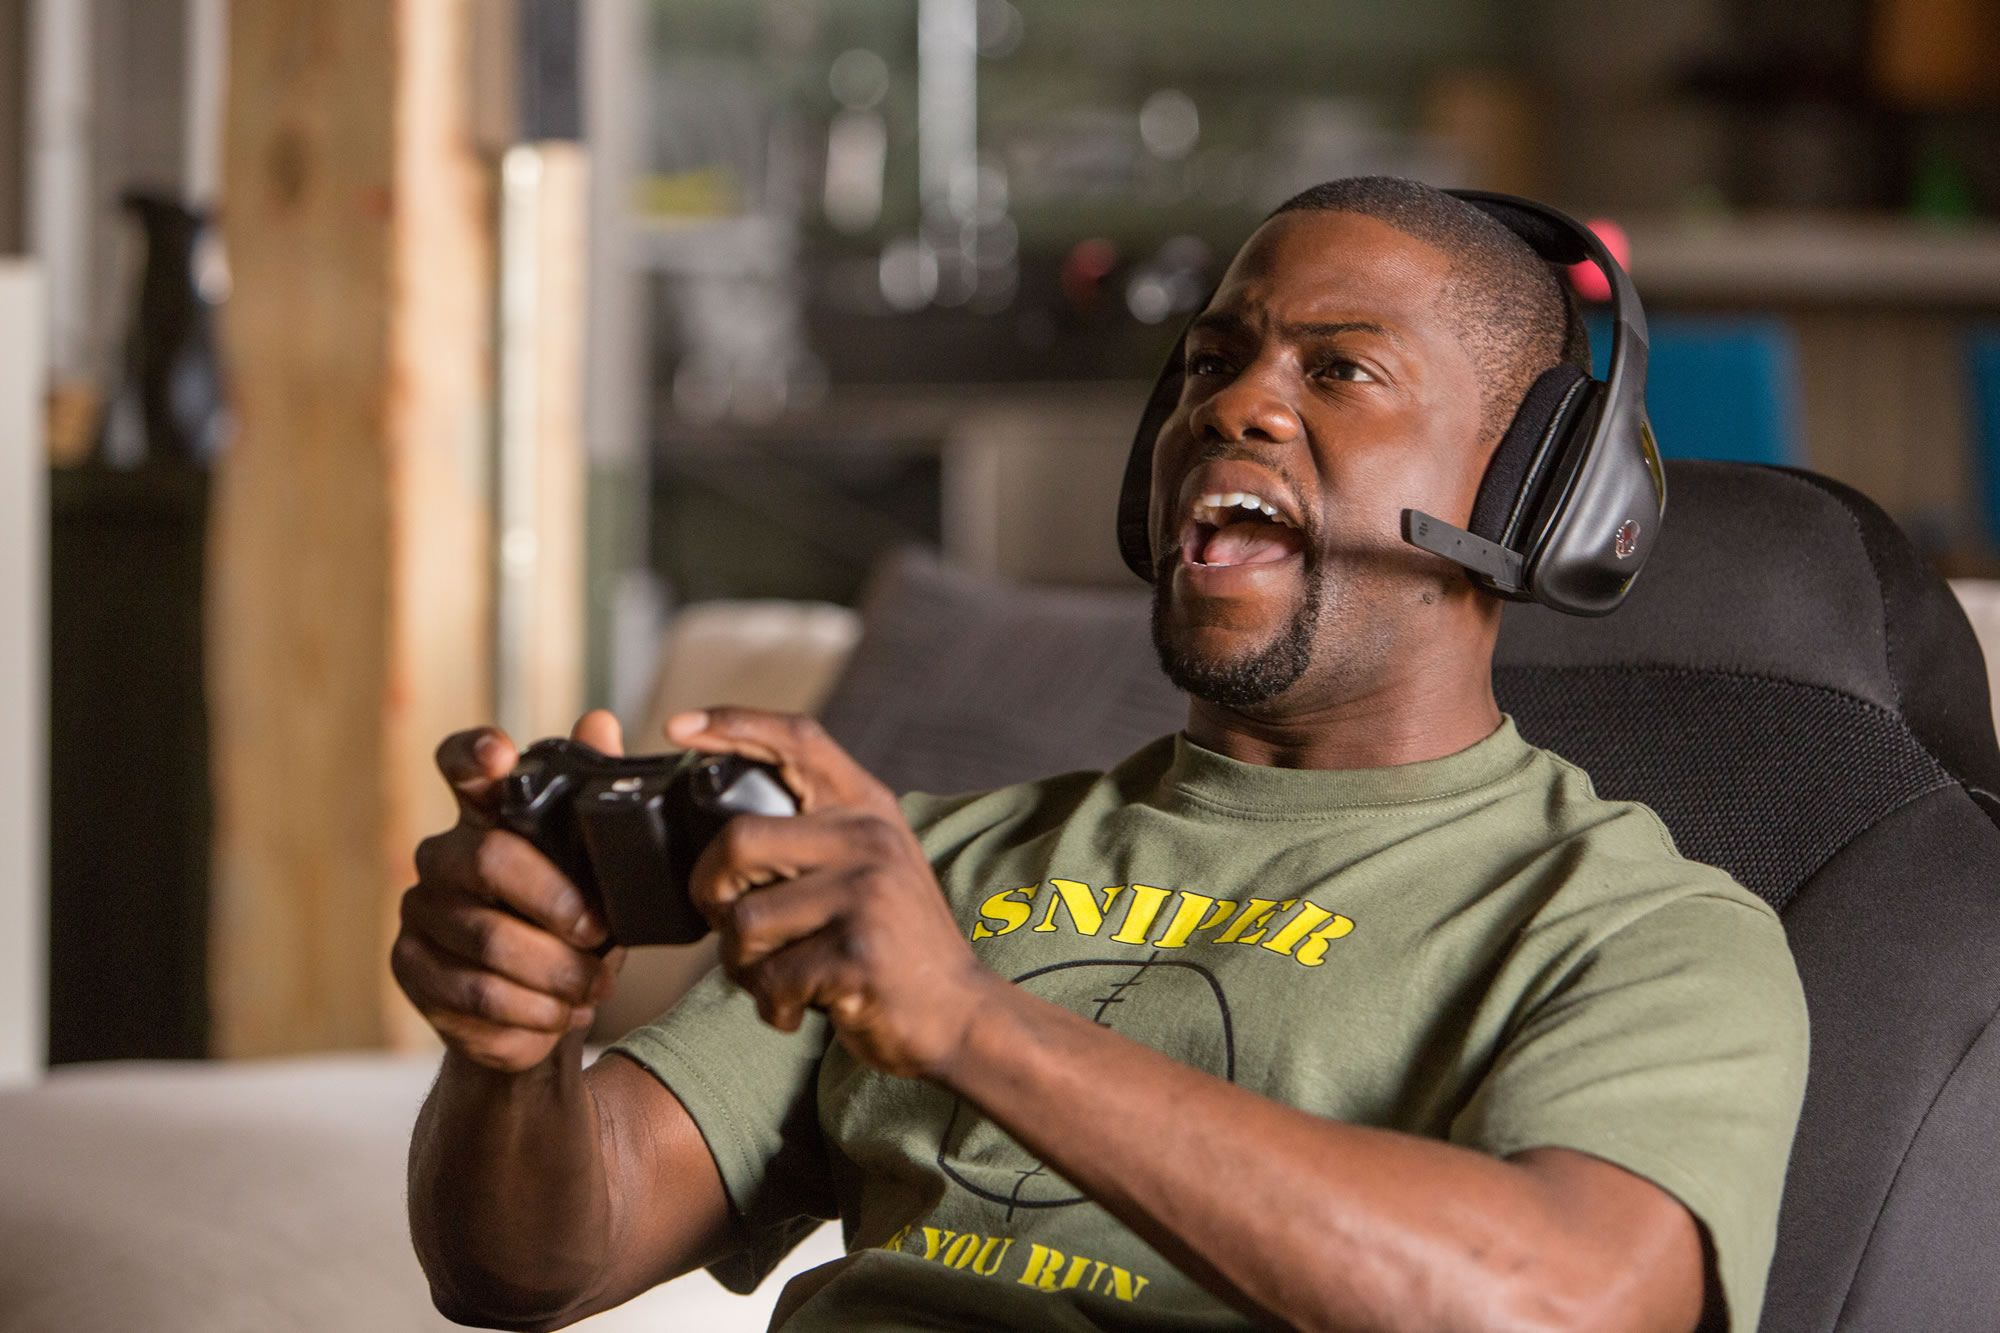 kevin hart fail at video game in ride along 2